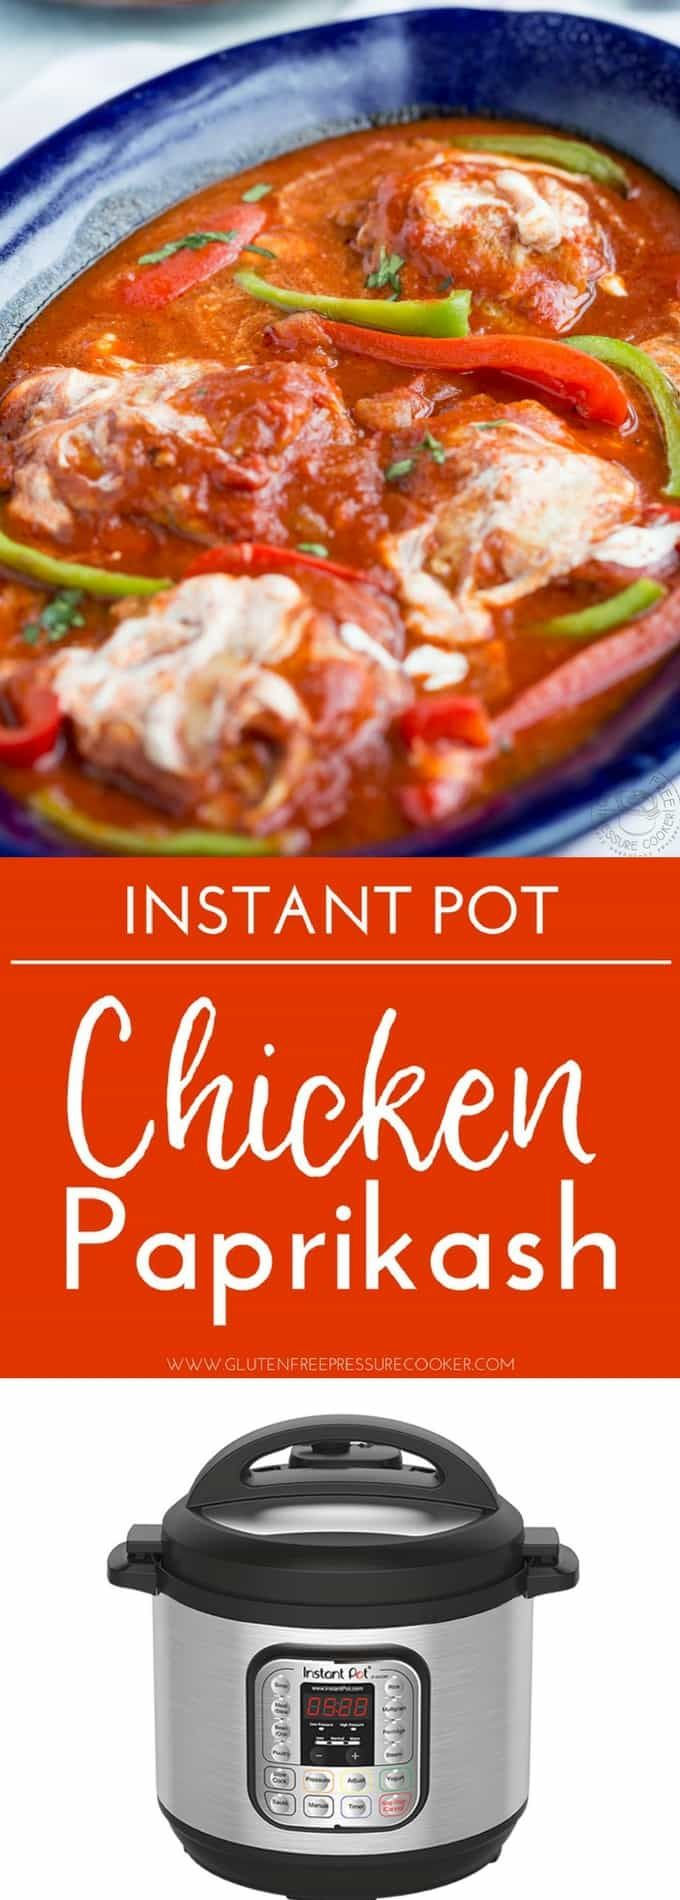 Chicken Paprikash Is A Simple Hungarian Recipe That S Easily Made With Onions Chicken Paprika And Sour Cream This Pressure Co Instant Pot Chicken Paprikash Pressure Cooker Chicken